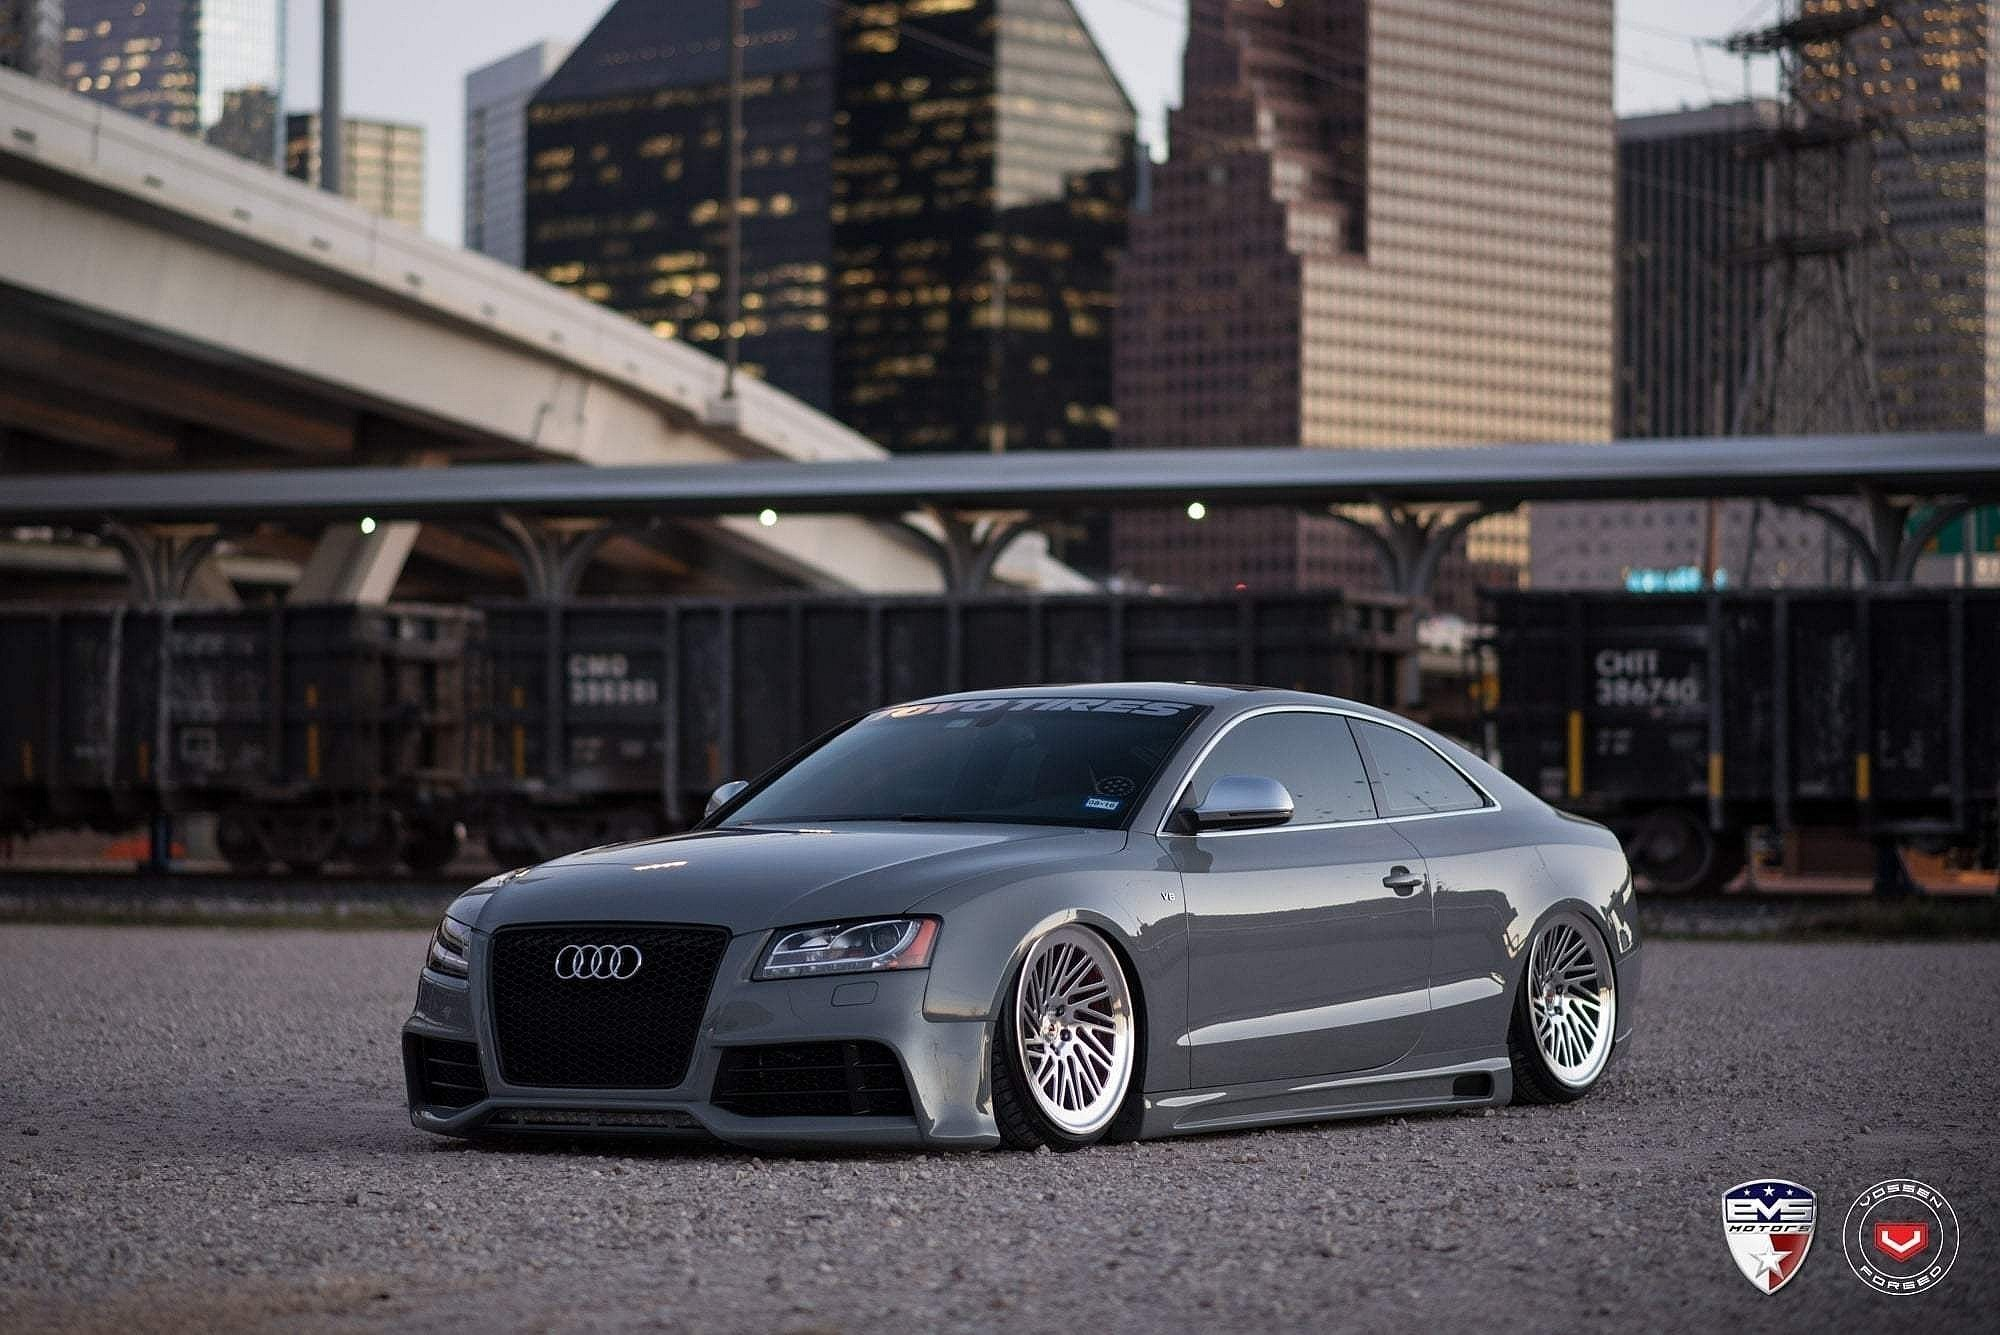 Res: 2000x1335, Audi S5 Wallpaper 77 Images Rs5 For Iphone